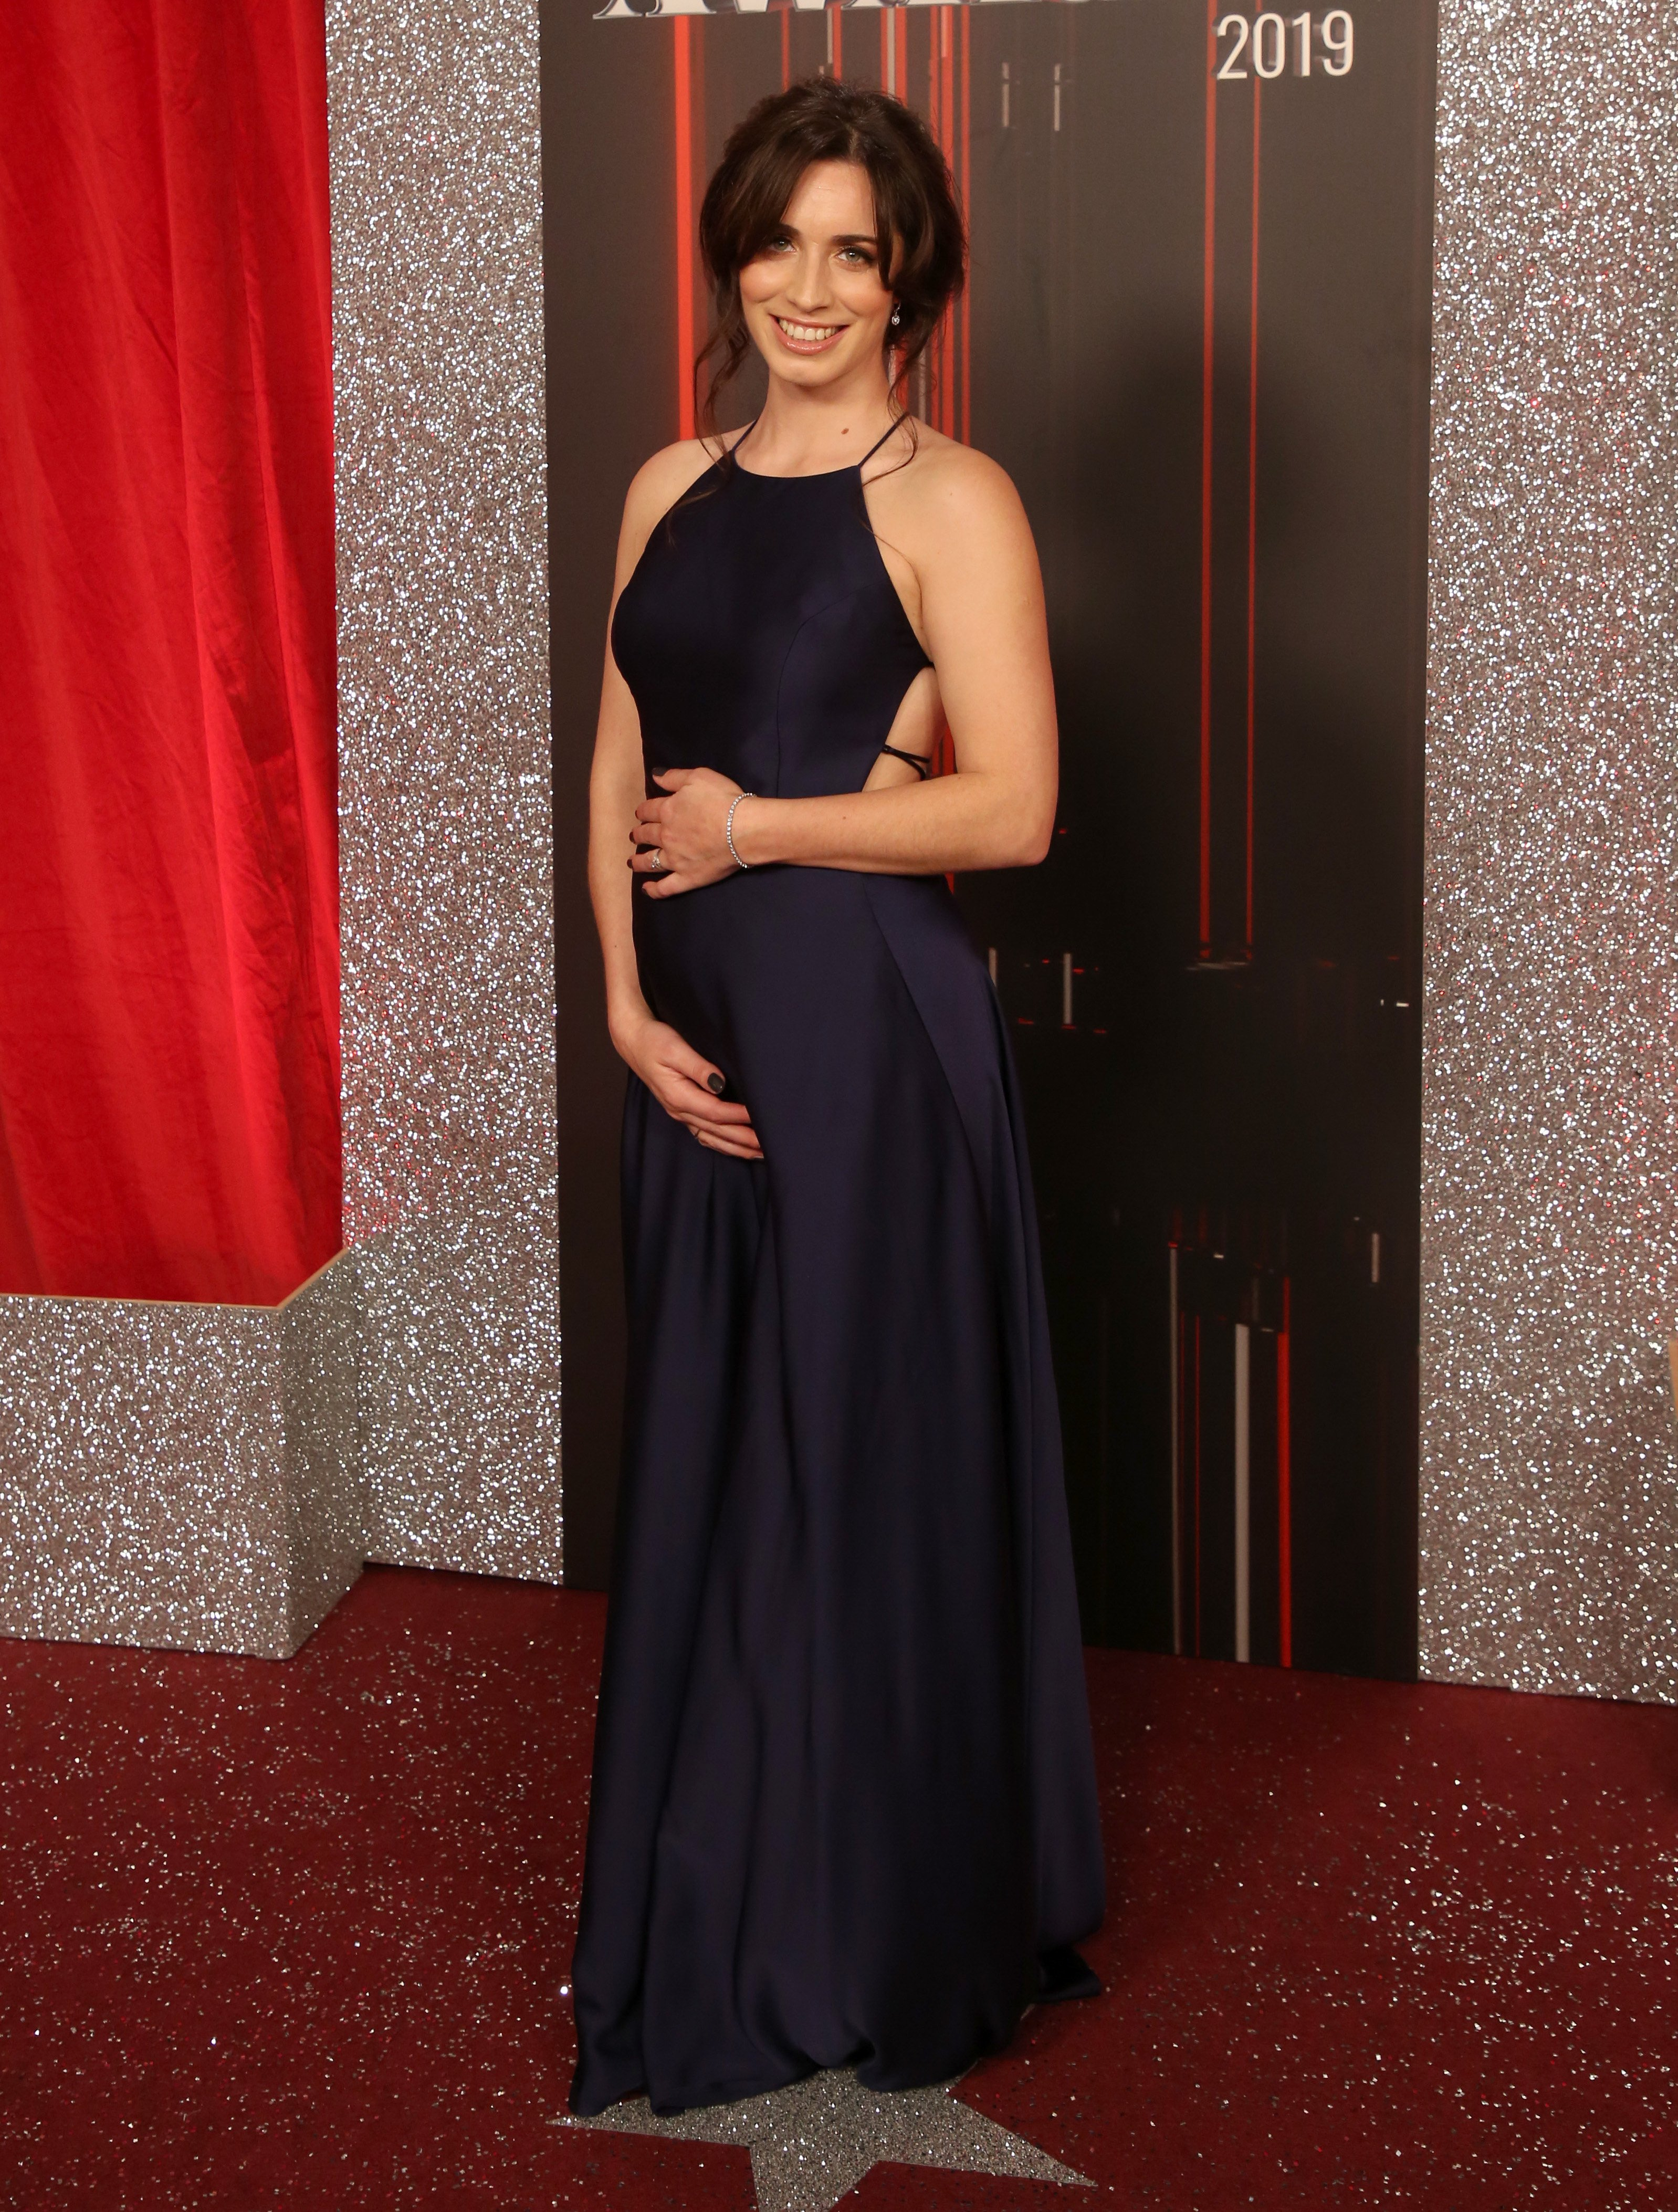 Stars attend the British Soap Awards 2019 at The Lowry in Manchester Pictured: Julia Goulding Ref: SPL5094911 010619 NON-EXCLUSIVE Picture by: SplashNews.com Splash News and Pictures Los Angeles: 310-821-2666 New York: 212-619-2666 London: 0207 644 7656 Milan: 02 4399 8577 photodesk@splashnews.com World Rights